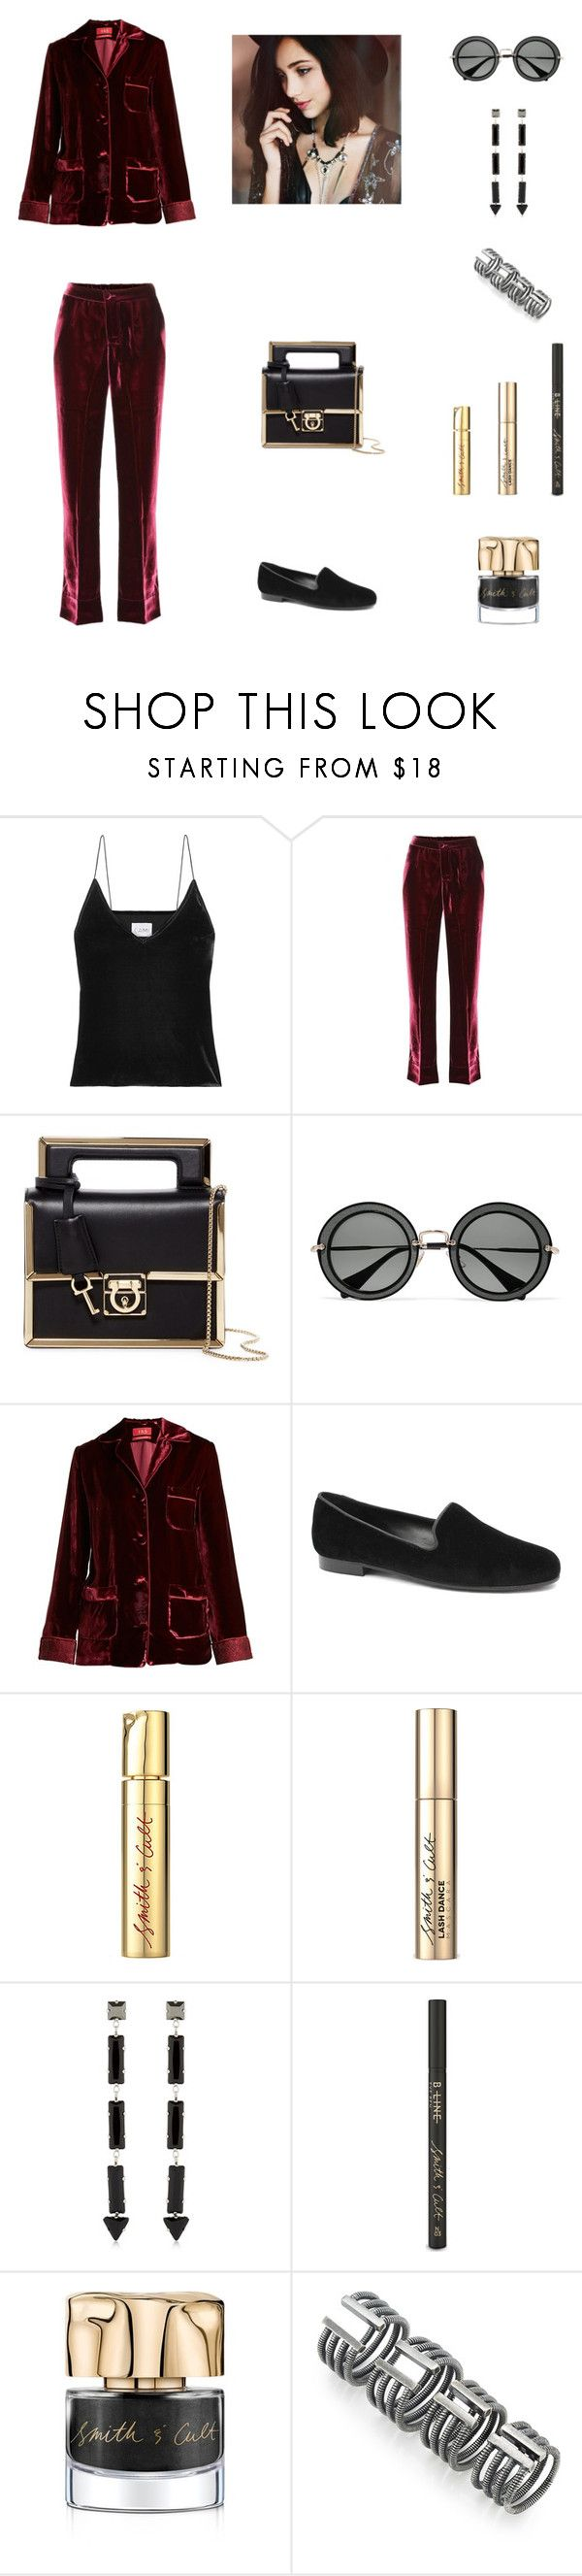 """Work Outfit #152"" by cherryflame14 ❤ liked on Polyvore featuring Cami NYC, F.R.S For Restless Sleepers, Salvatore Ferragamo, Miu Miu, Jon Josef, Smith & Cult, REMINISCENCE and Maison Margiela"